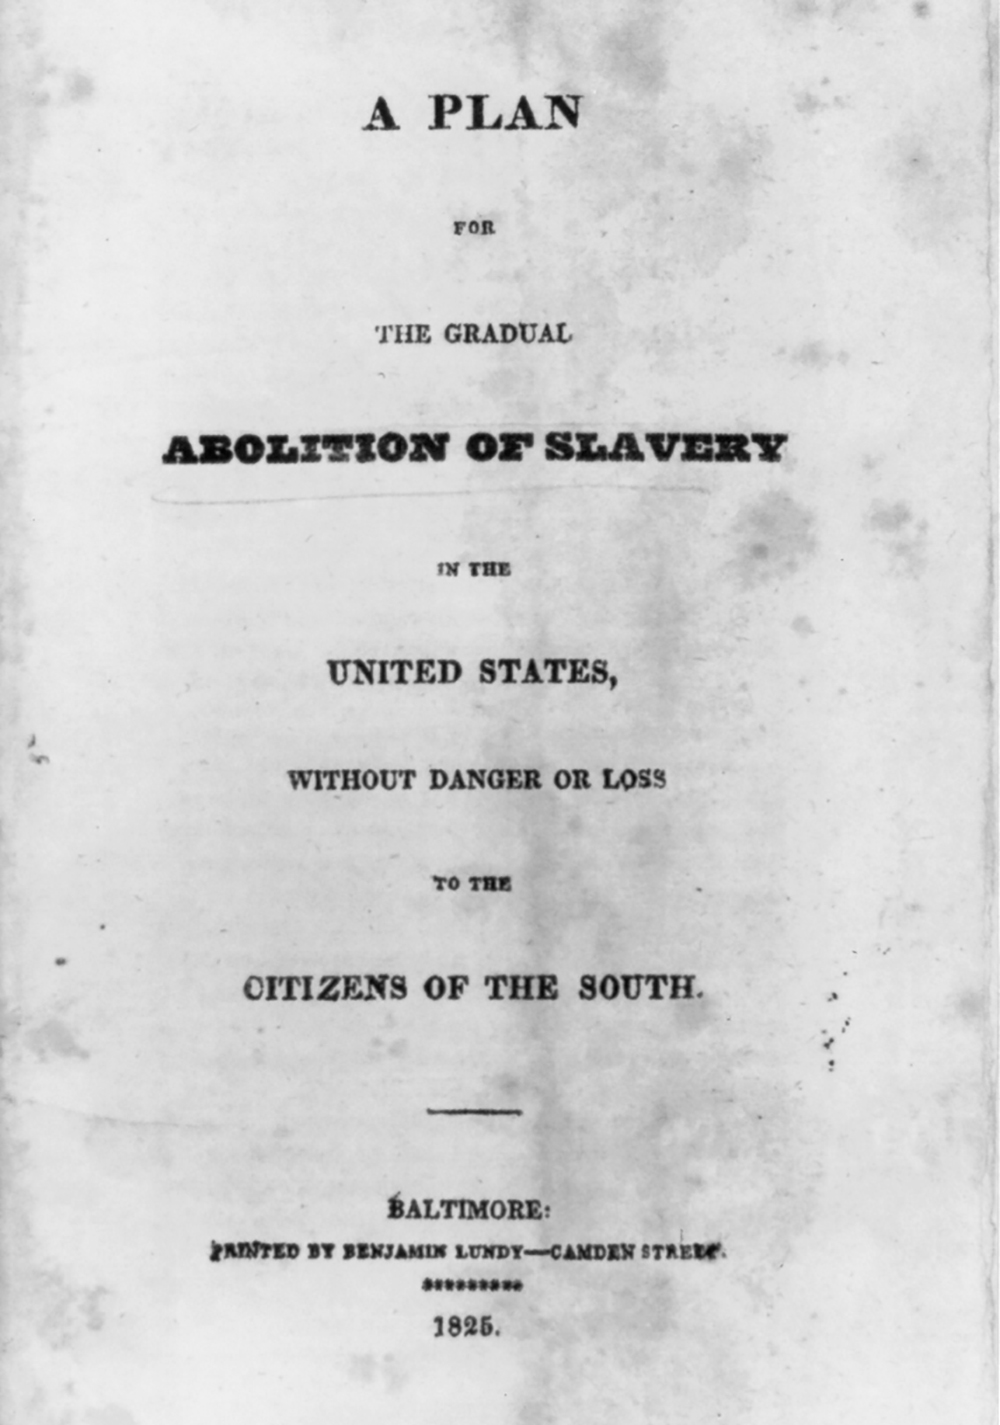 Title page of the pamphlet A Plan for the Gradual Abolition of Slavery in the United States, without Danger or Loss to the Citizens of the South, 1825.